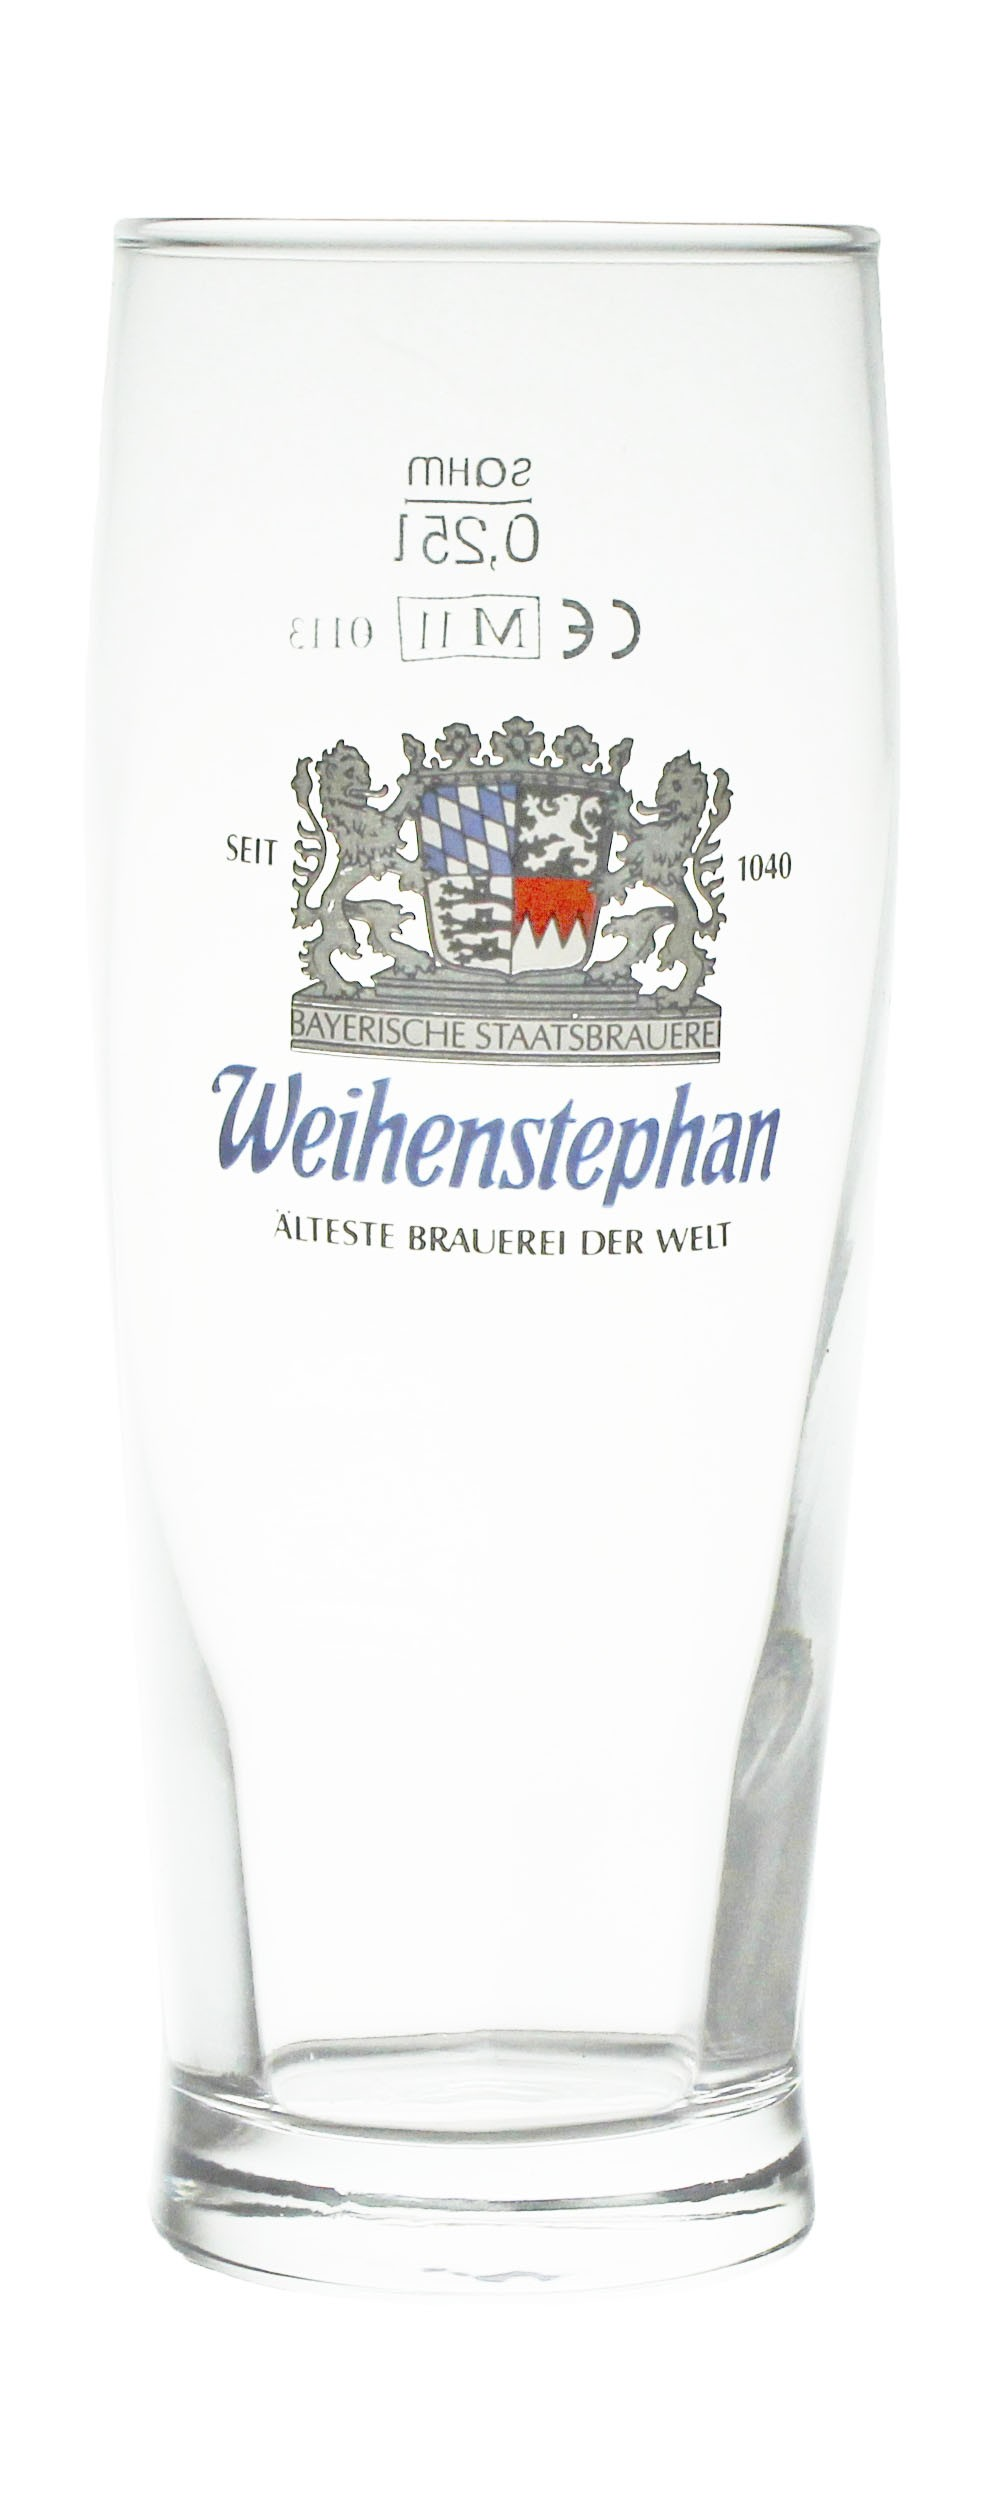 Photo de face de Weihenstephan